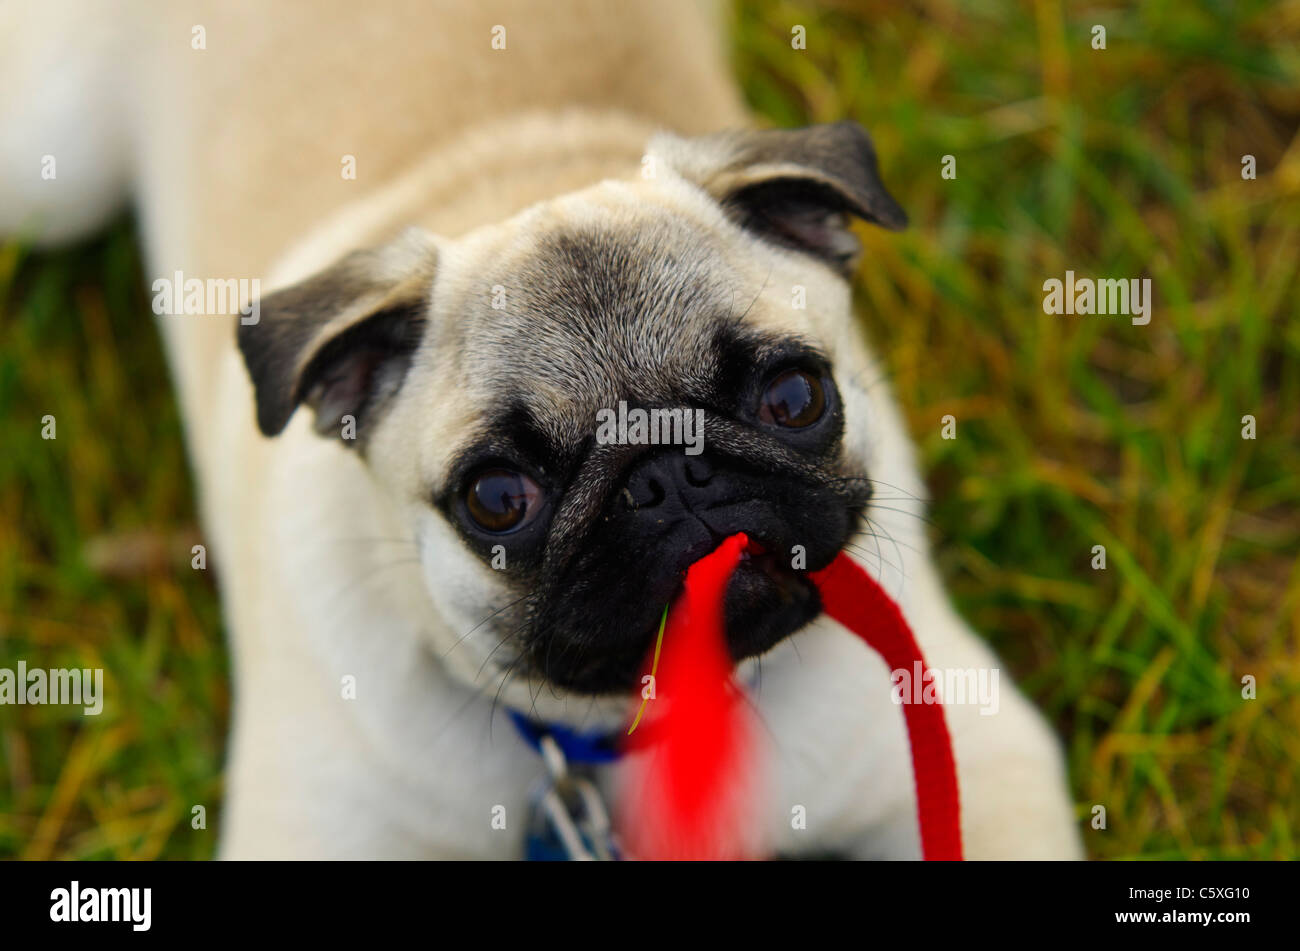 A 36 week old Chinese pug puppy protesting her leash by chewing on it. - Stock Image